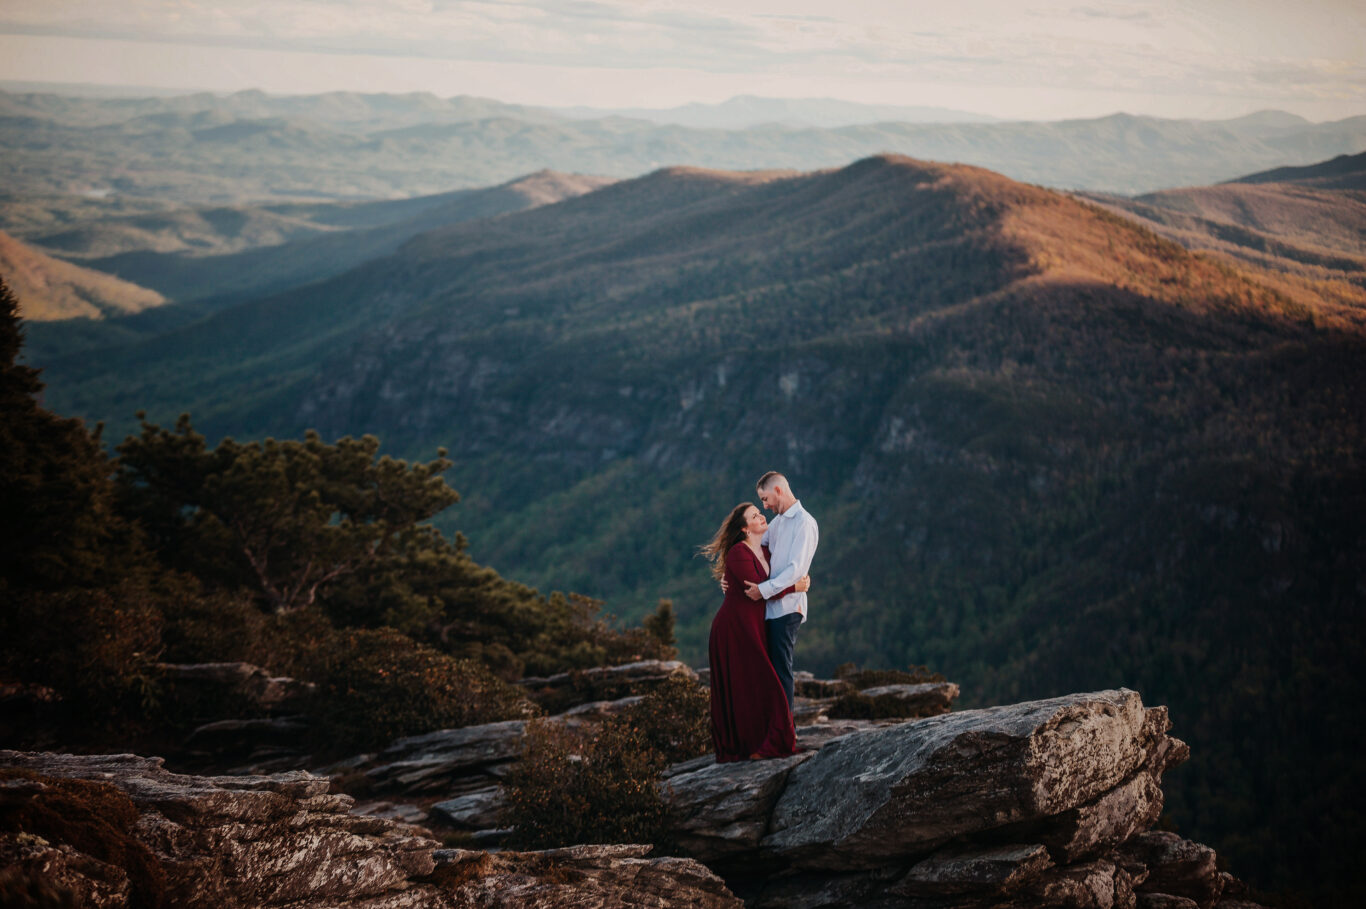 Engaged couple embraces on a mountain top in Asheville, NC for their Engagement Photo Session.